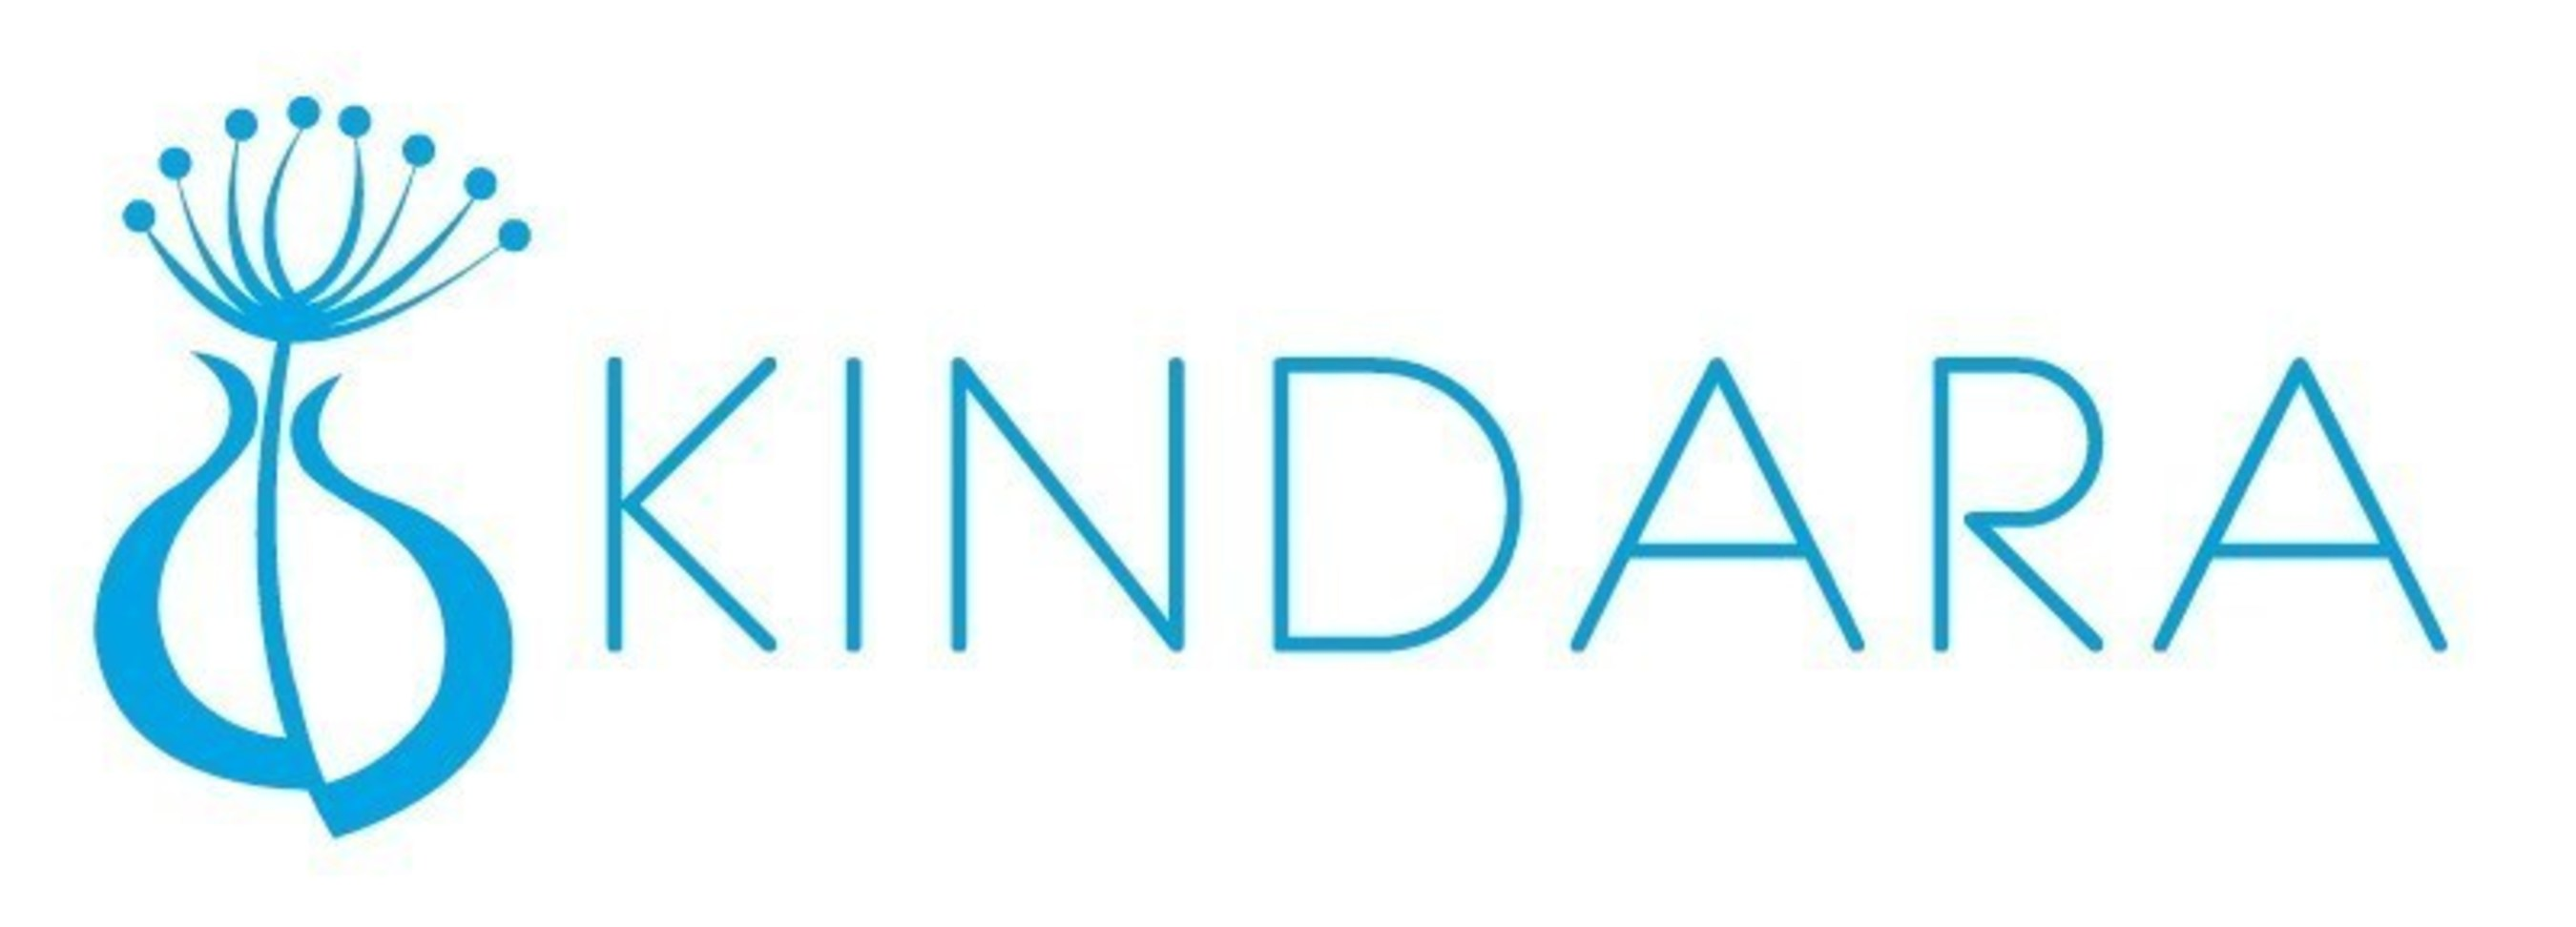 Kindara (www.kindara.com) is a company devoted to giving women the tools they need to take ownership of their reproductive health and meet their fertility goals.